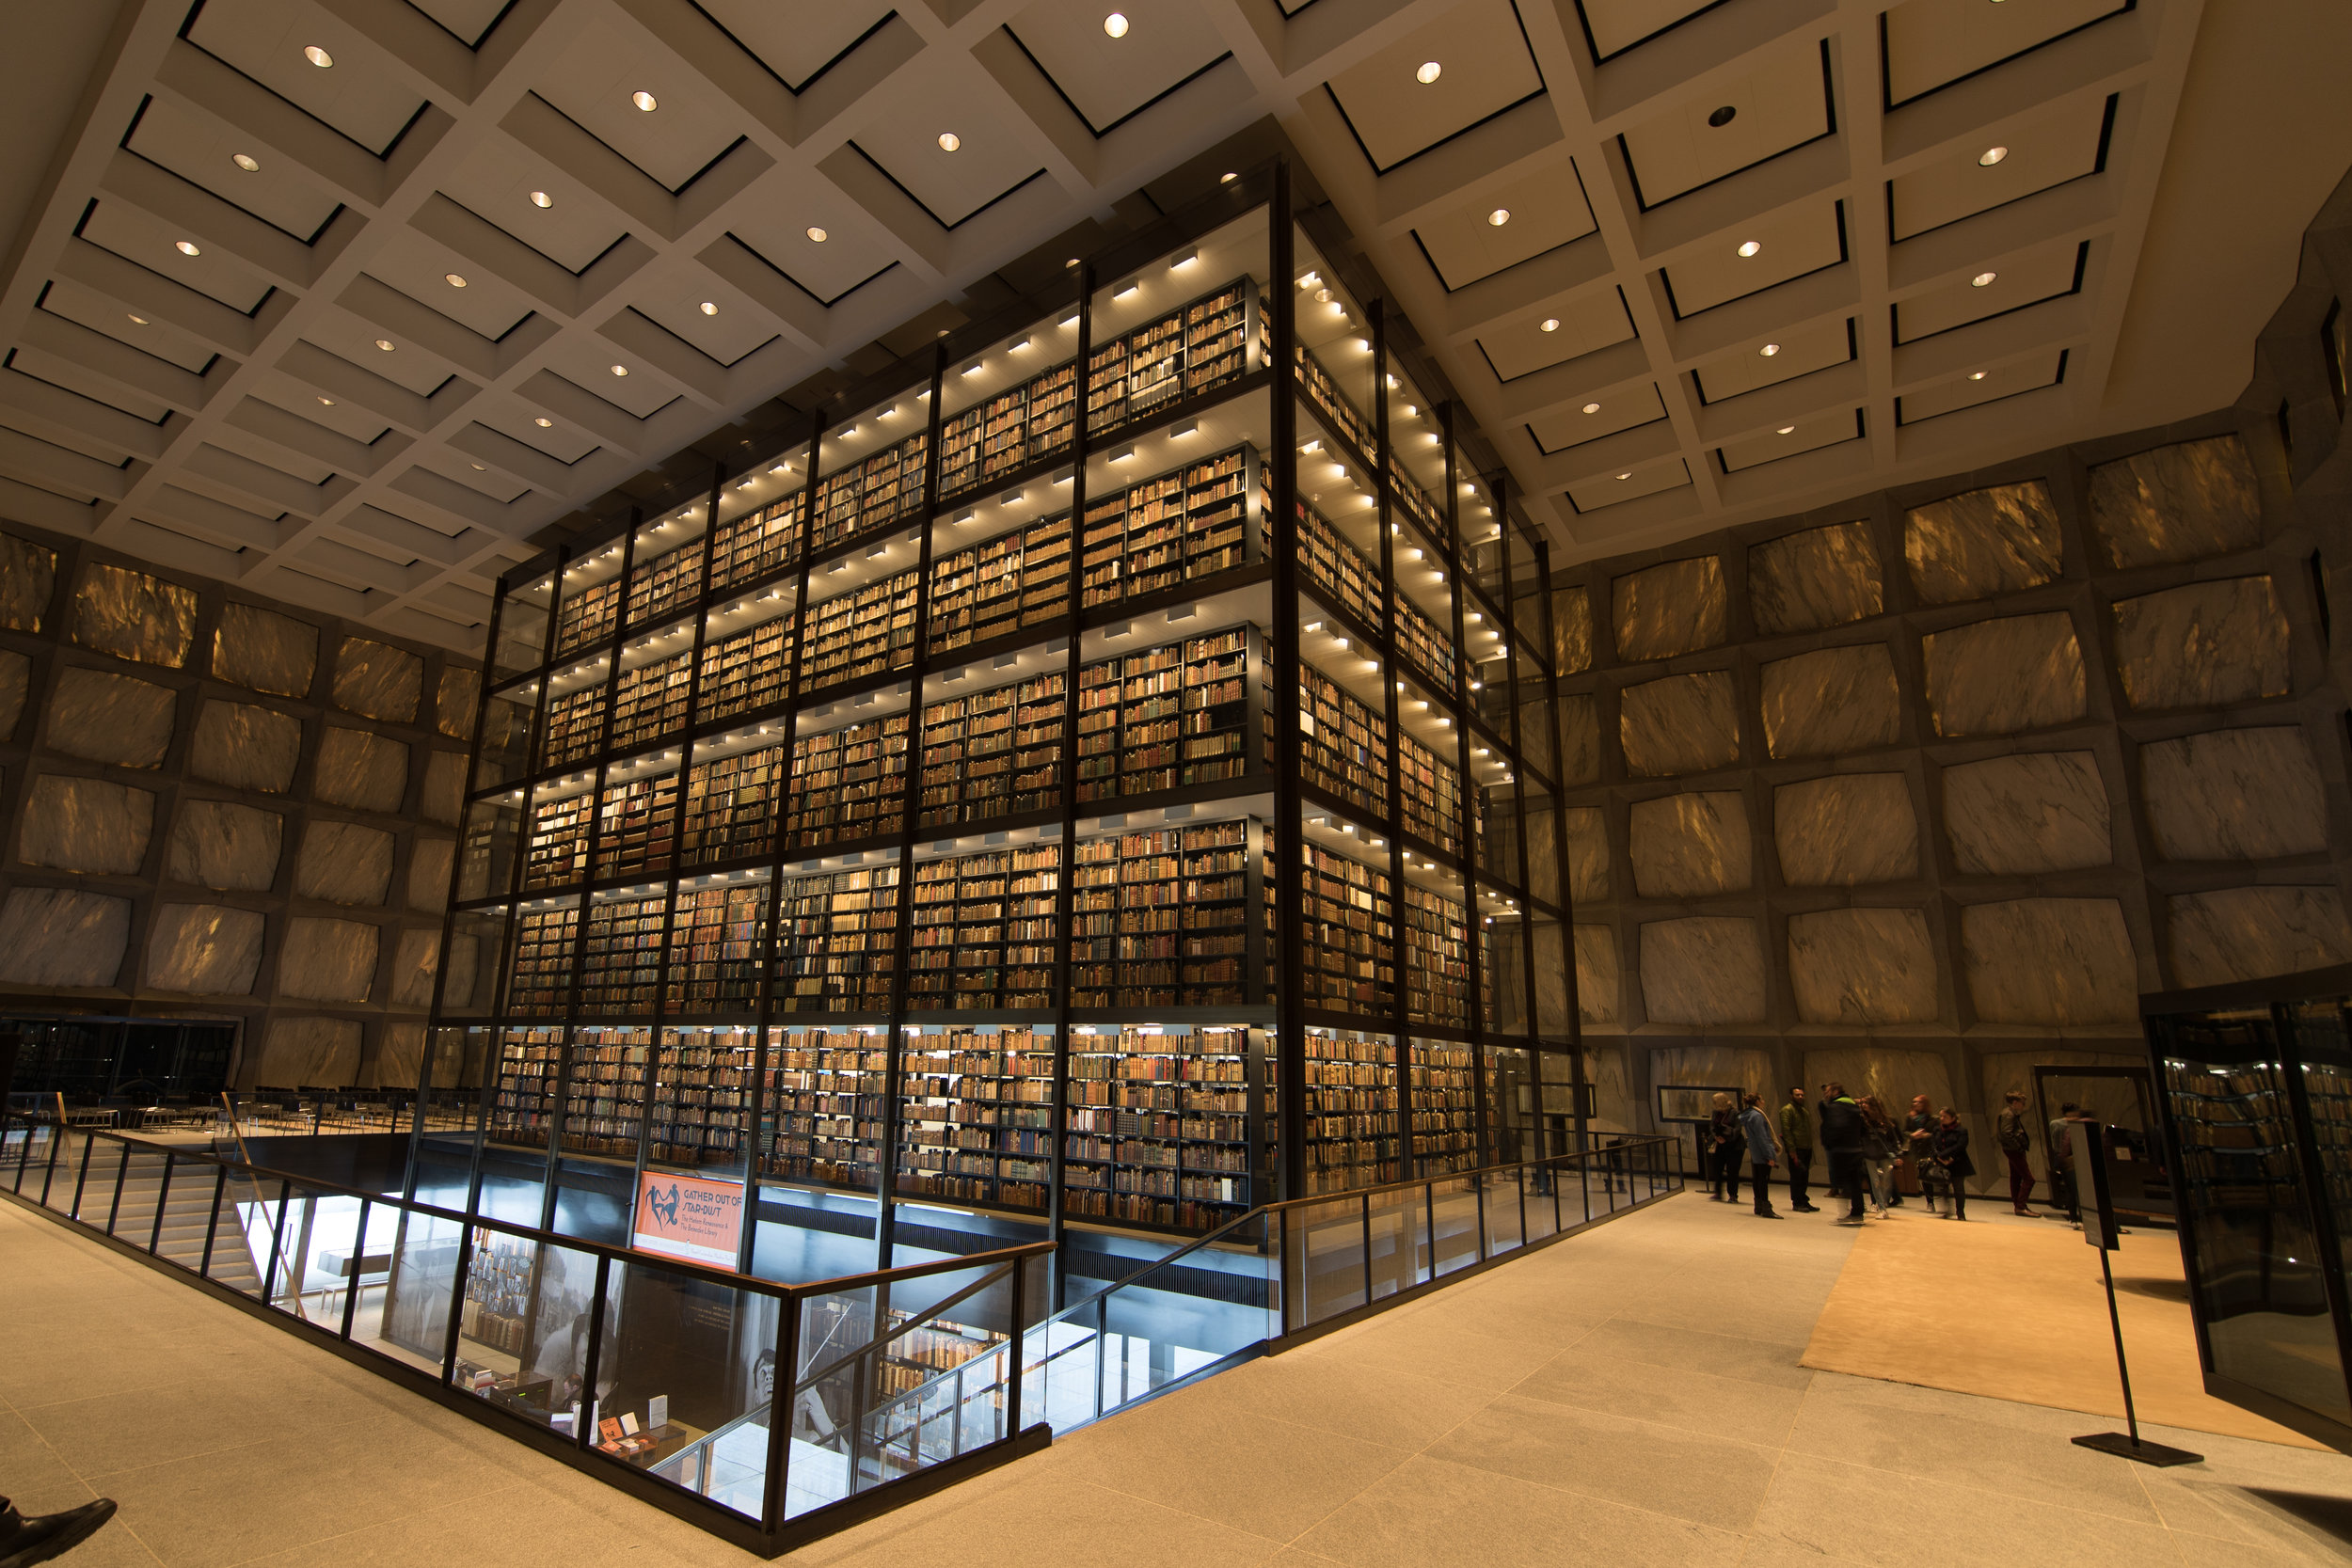 The Beinecke Rare Book & Manuscript Library at Yale University in New Haven, CT.  Photo by  Michael Kastelic  used here under  Creative Commons   Attribution-Share Alike 4.0 International